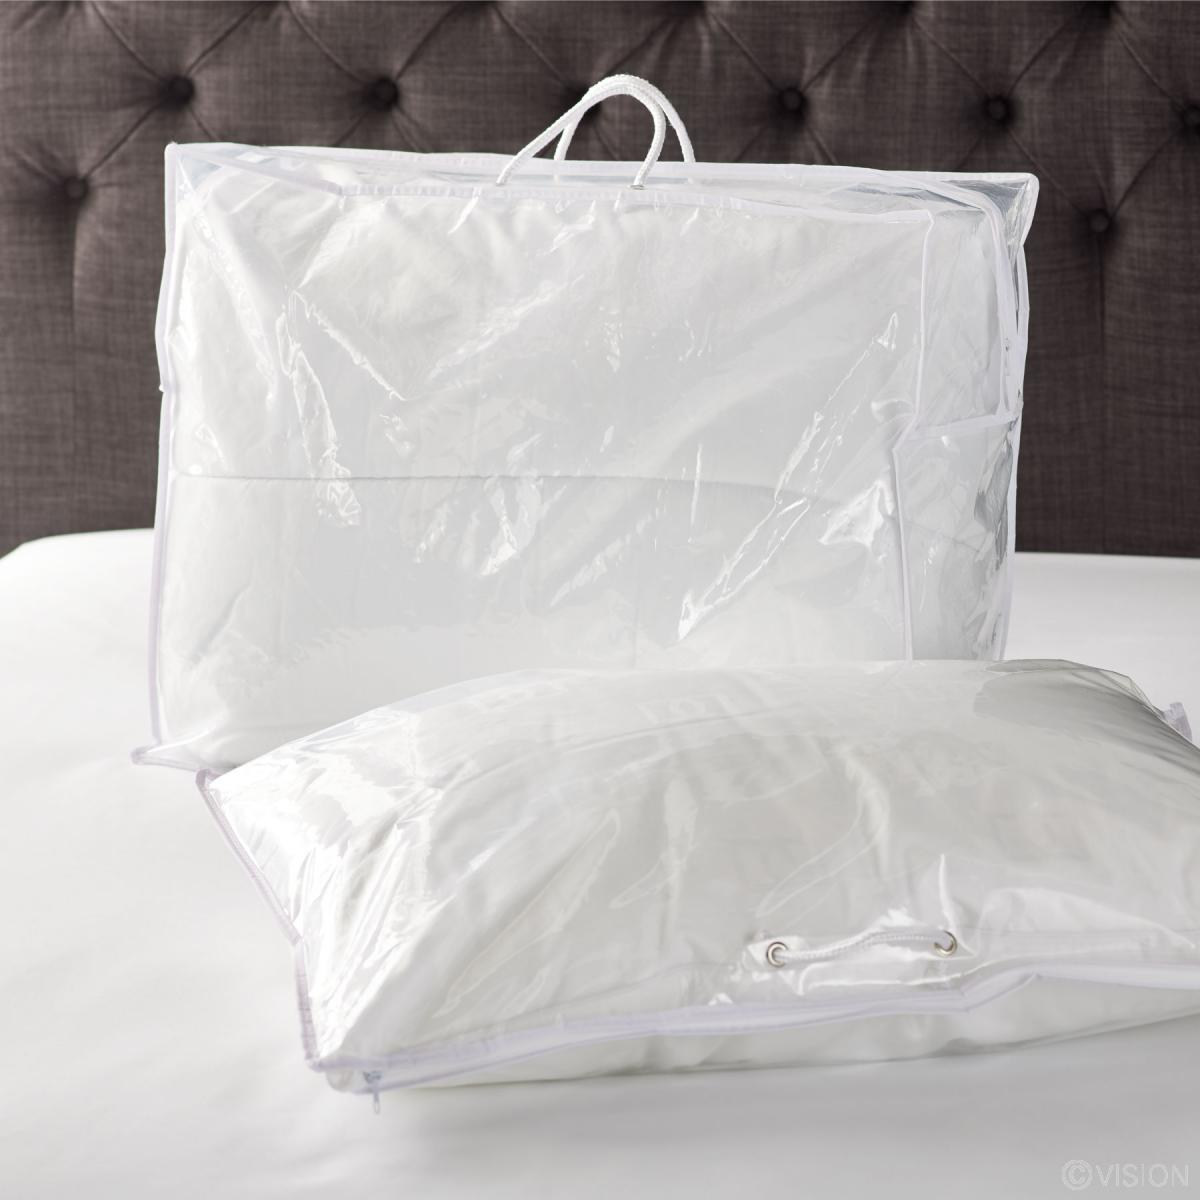 Blanket pillow storage bags & Buy Blanket u0026 Pillow Storage Bags with Zips u0026 Handles